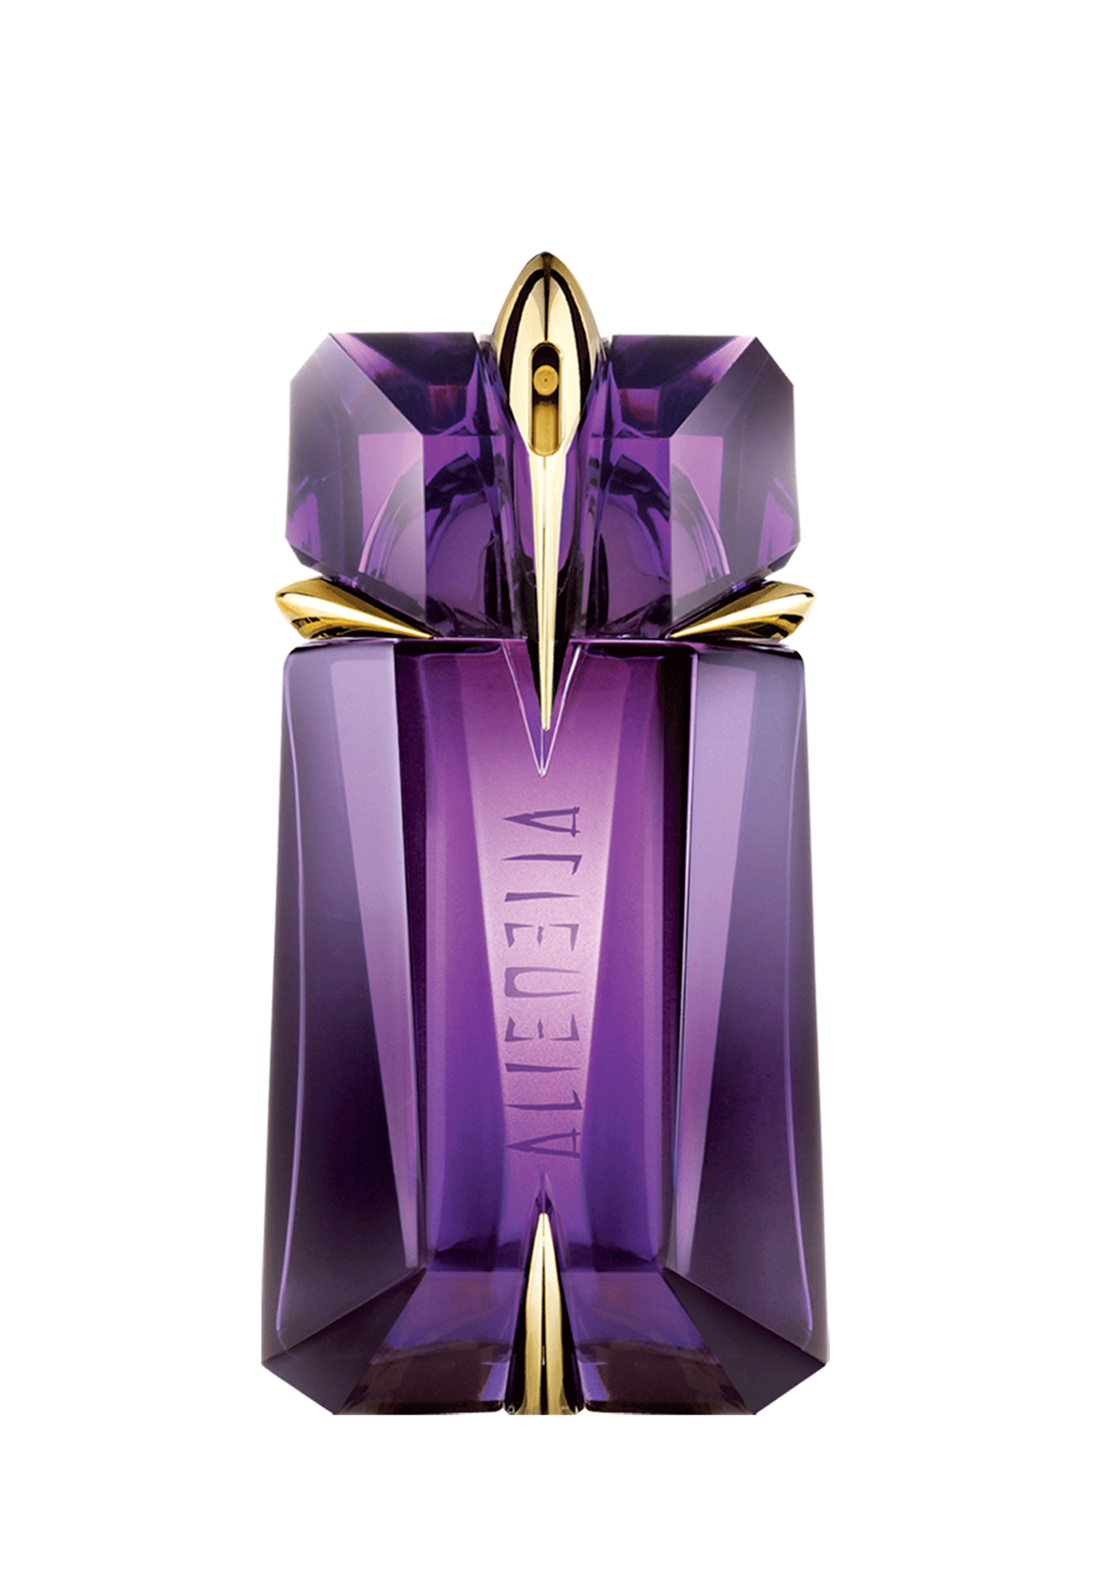 Thierry Mugler Alien Eau De Parfum 60ml Refillable